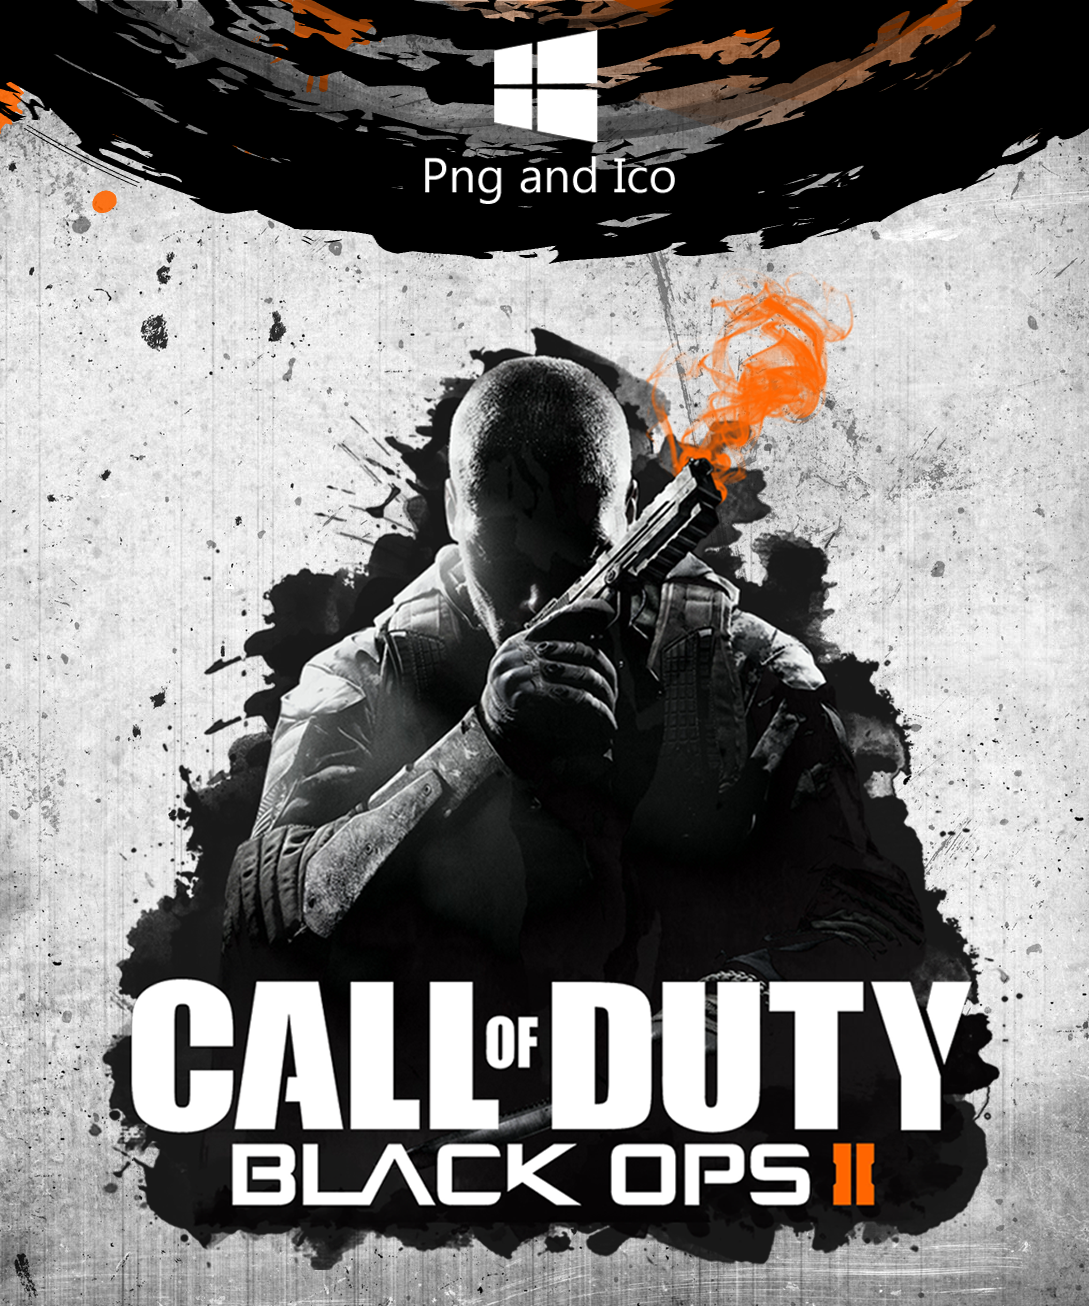 Call of Duty Black Ops 2 Icon by nemanjadmitrovic on DeviantArt.